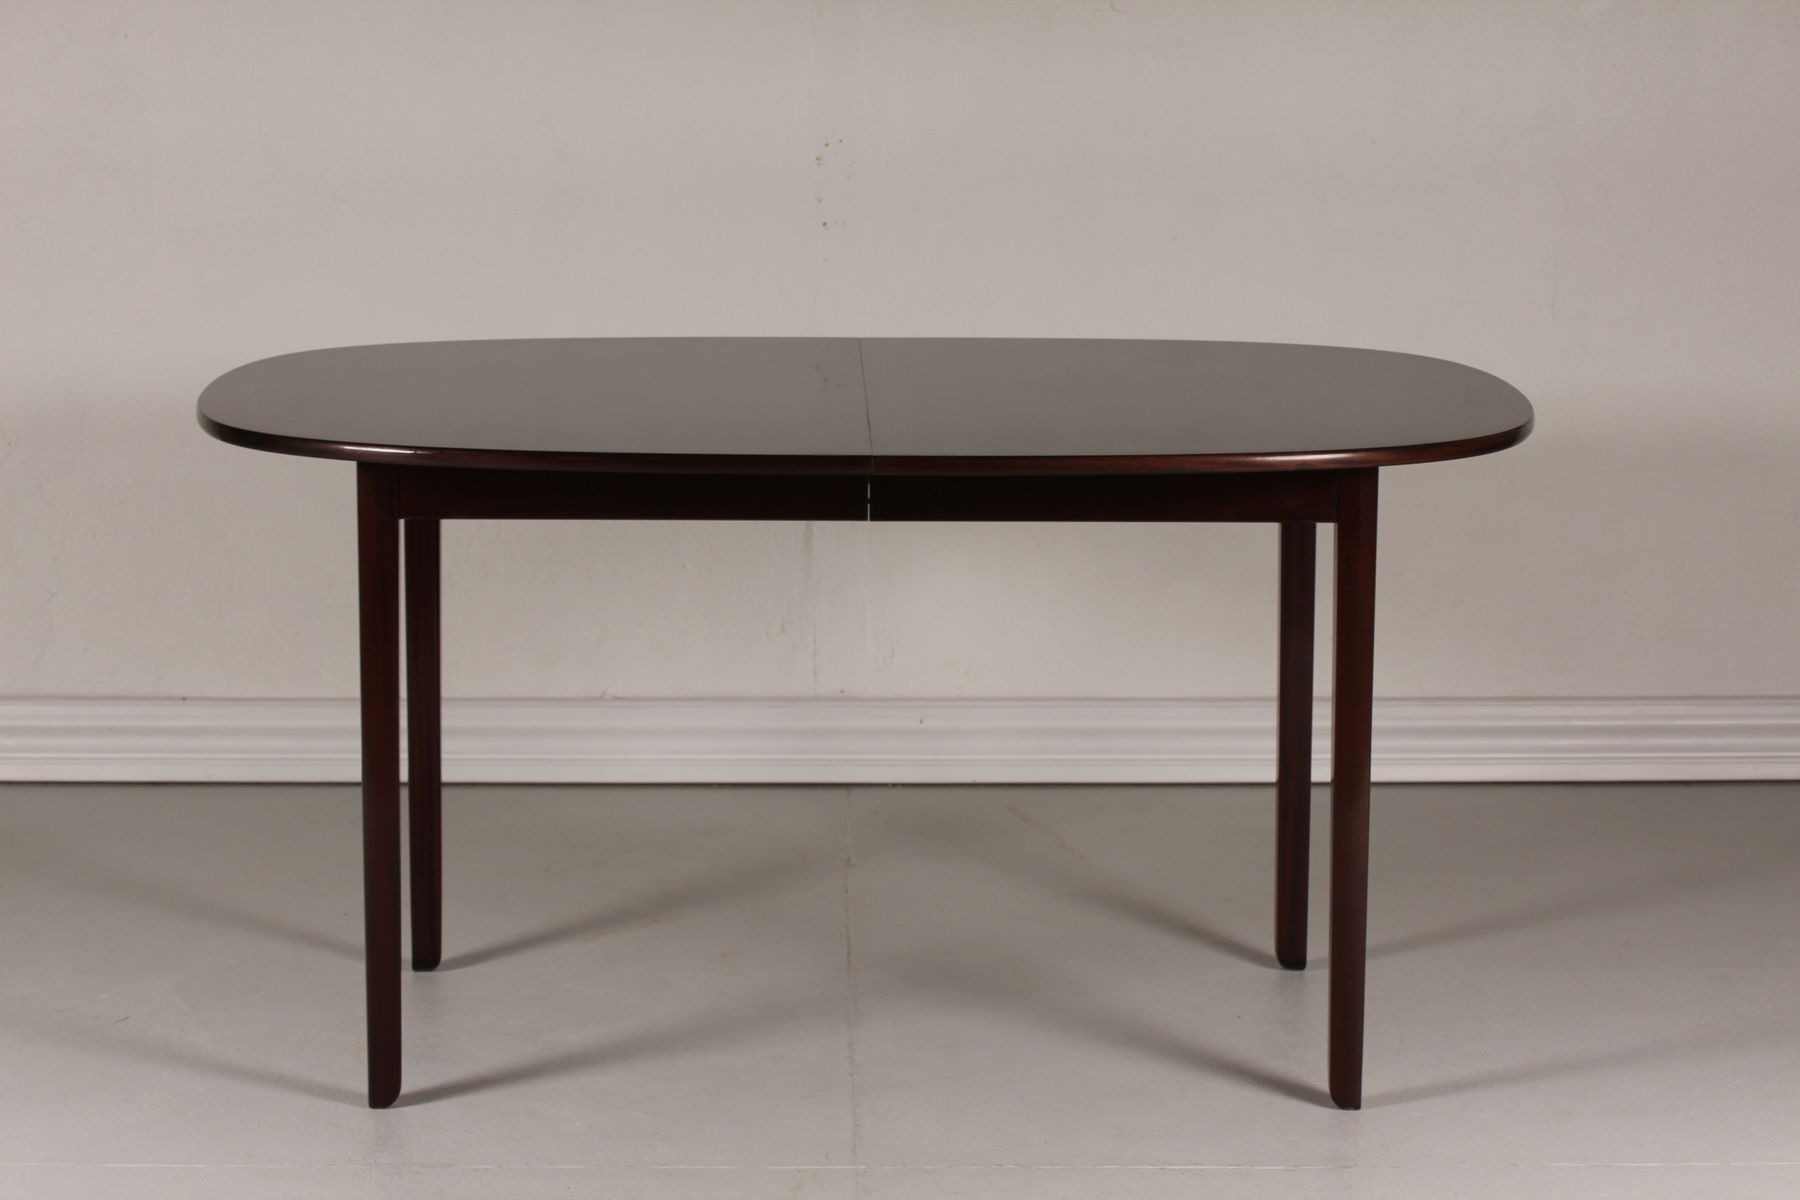 Vintage Danish Mahogany Rungstedlund Dining Table by Ole Wanscher